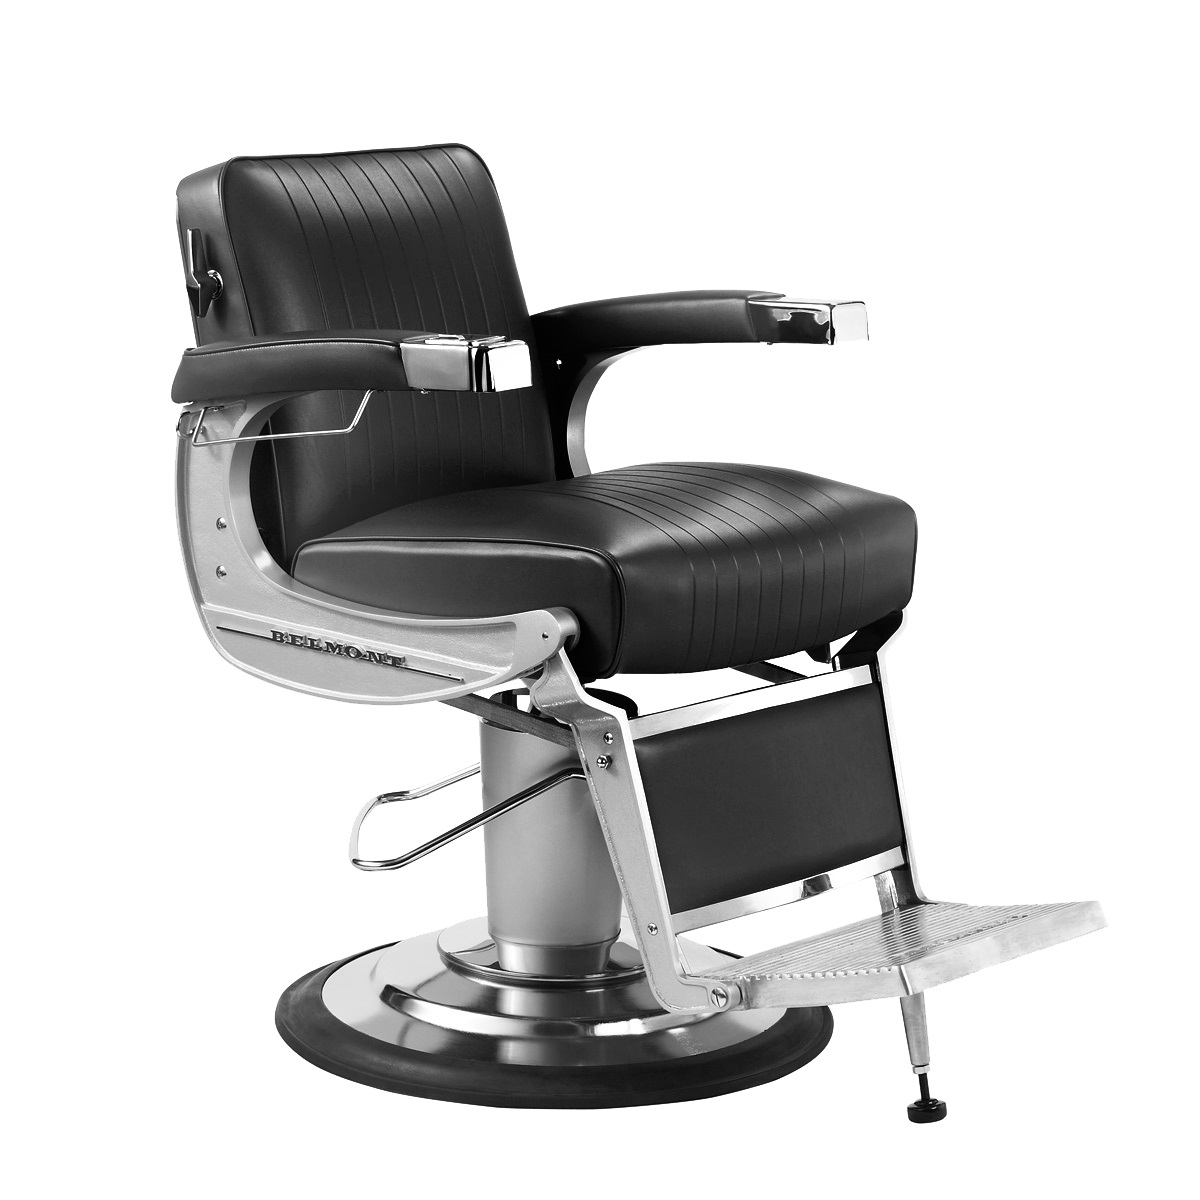 Belmont Barber Chair For Sale Novvo Etopa Takara Belmont Elegance Barber Chair